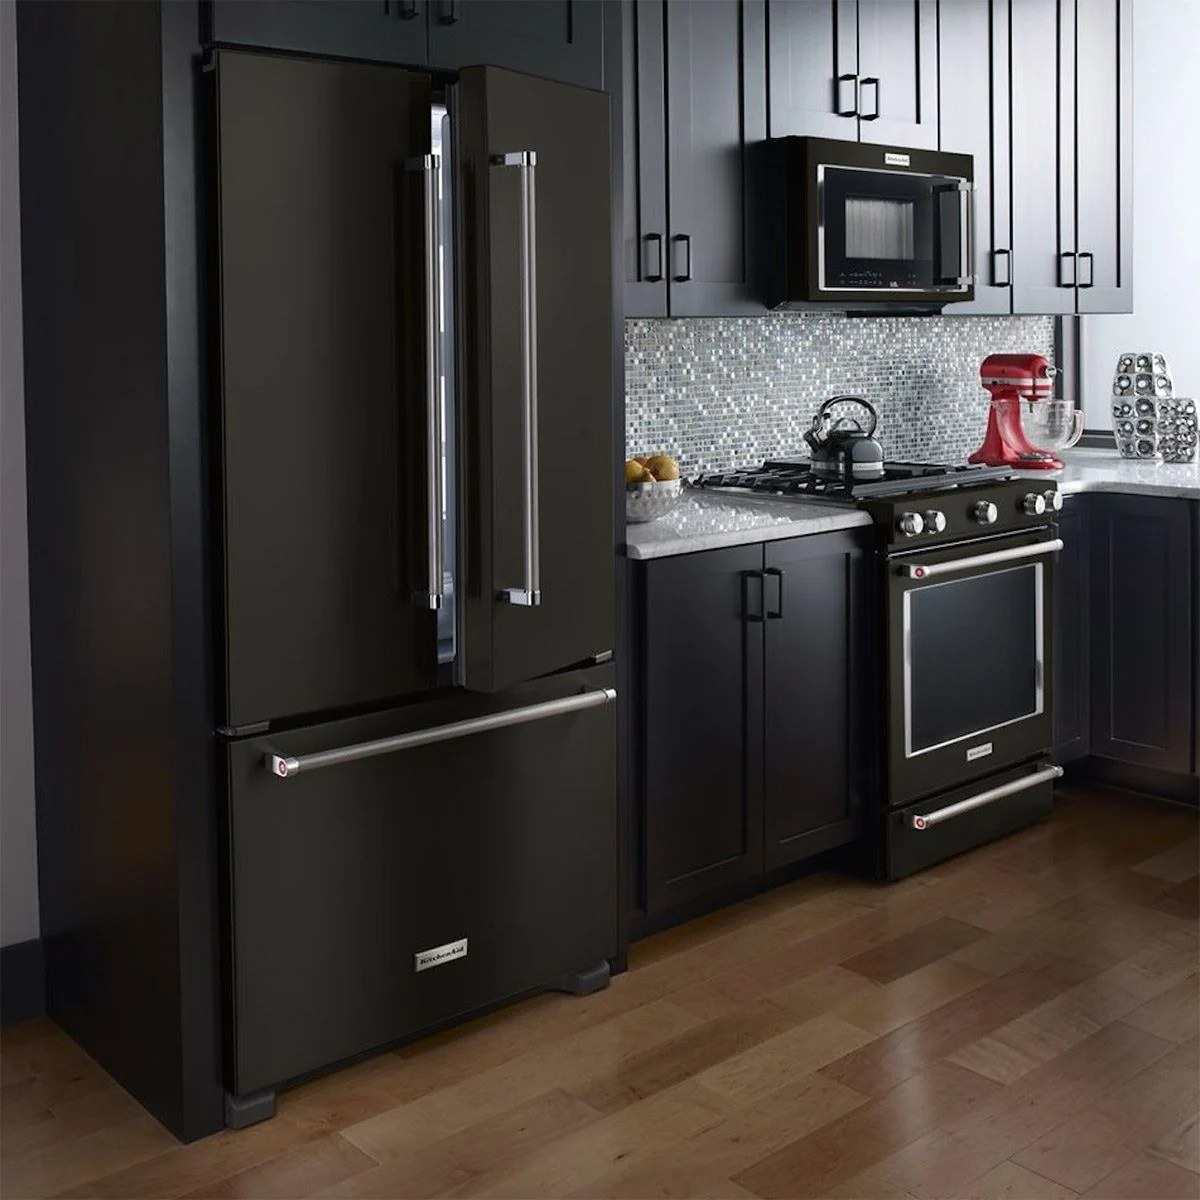 Black Appliance Kitchen Ideas Home Trend Black Stainless Steel Appliances The Family